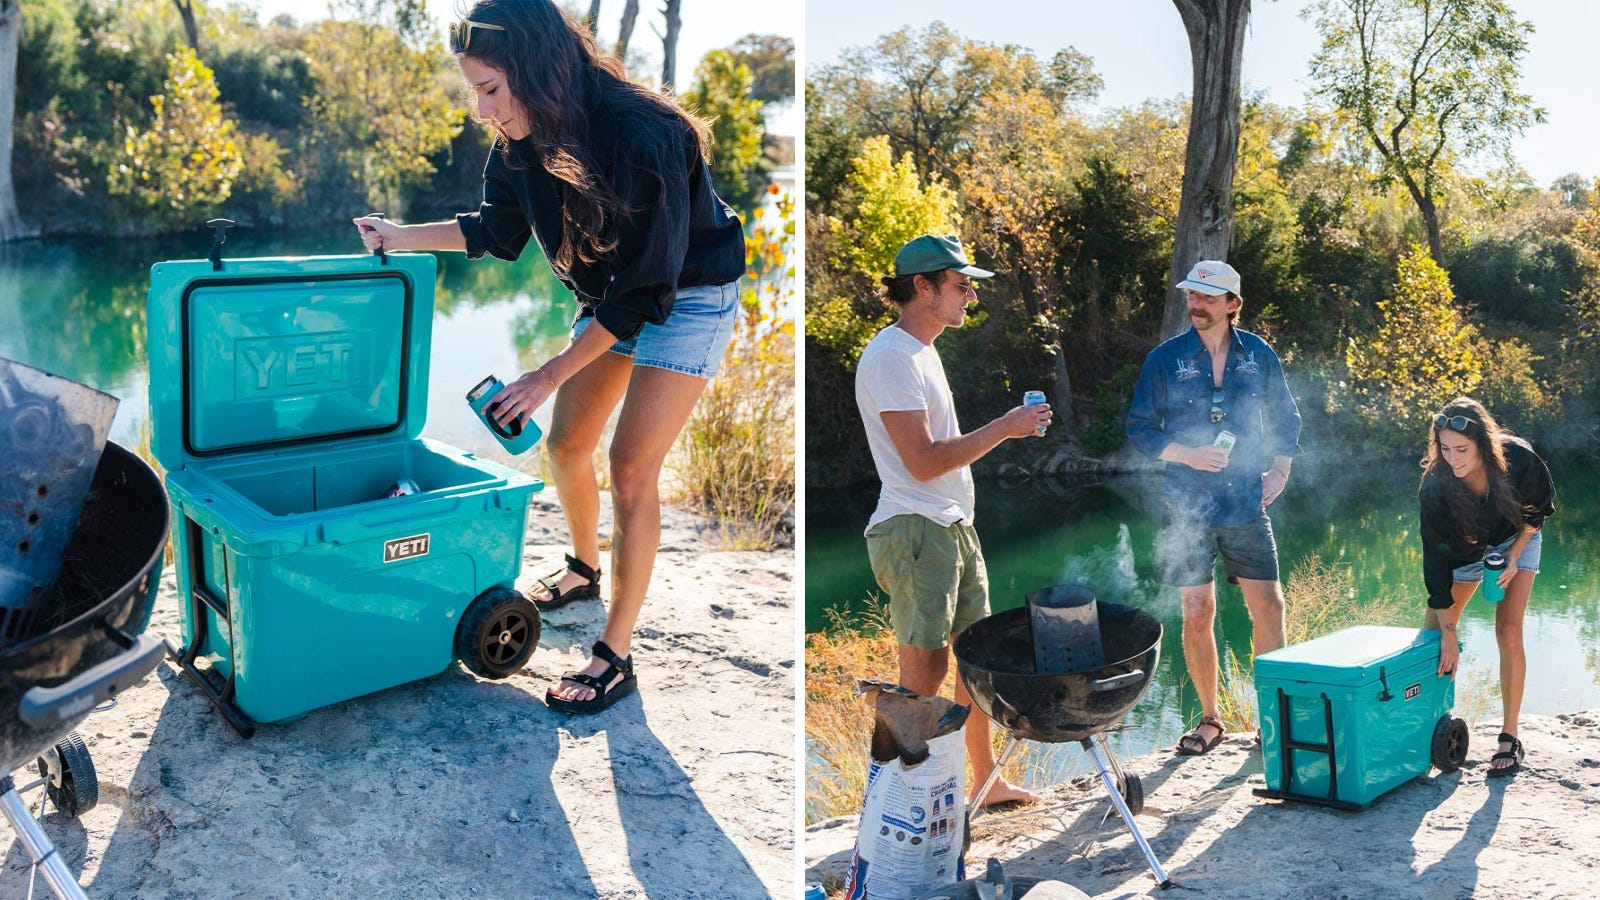 Two images featuring the YETI Tundra cooler. The left image is a camper filling her YETI tumbler up with a cold beverage, and the right image are three campers standing by their YETI cooler, enjoying the summers day.